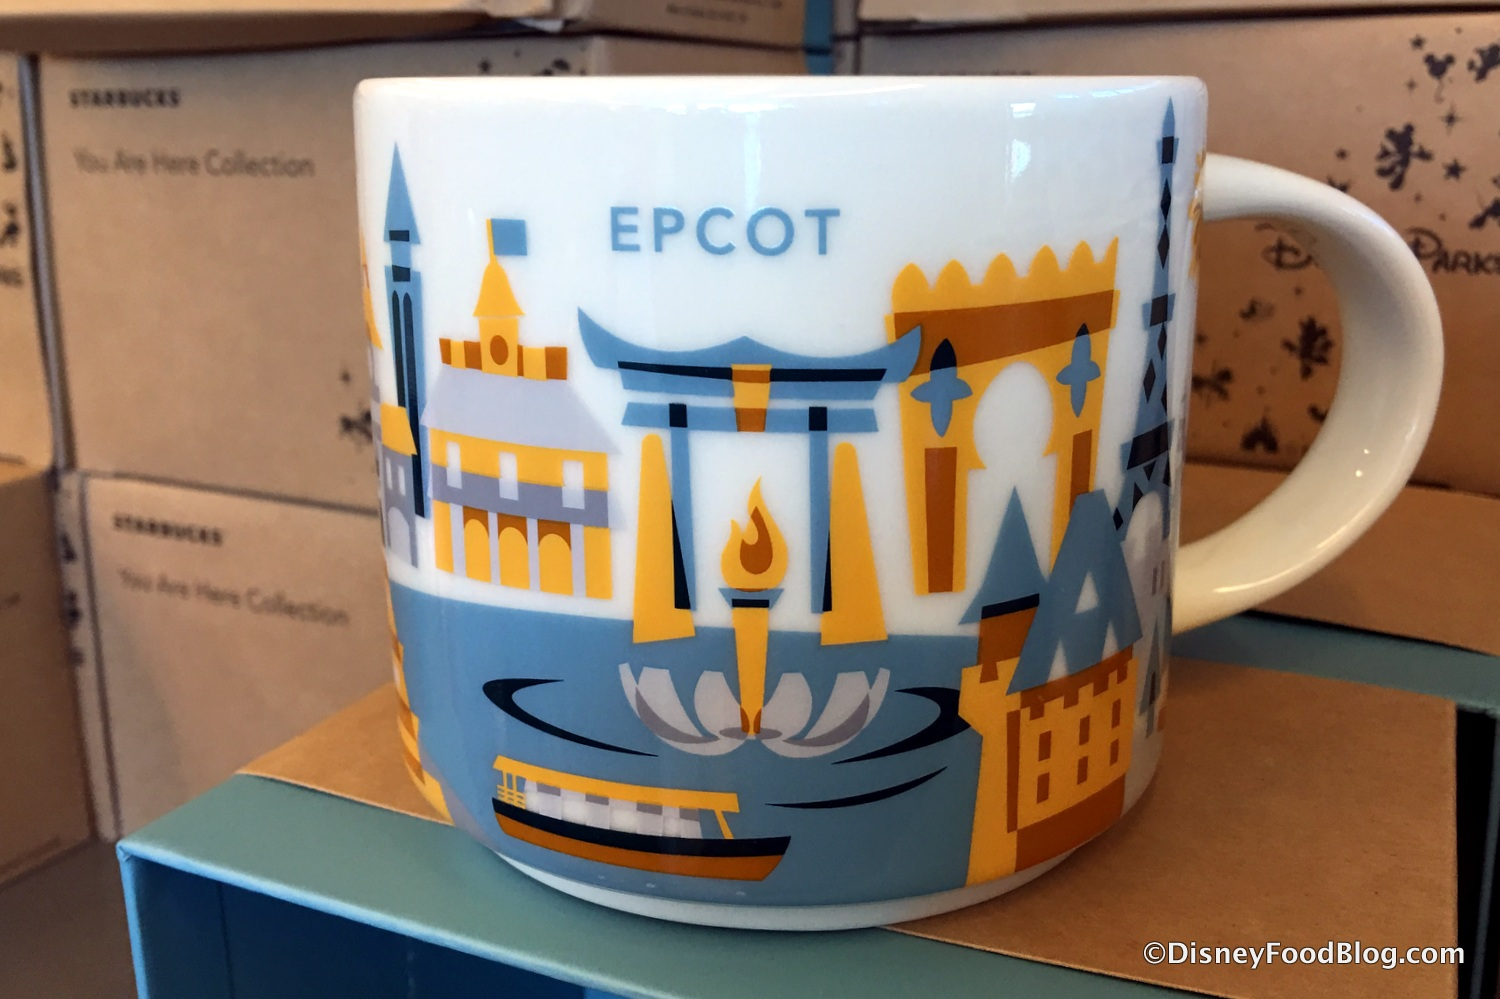 Spotted New Epcot Starbucks You Are Here Mugs And More At